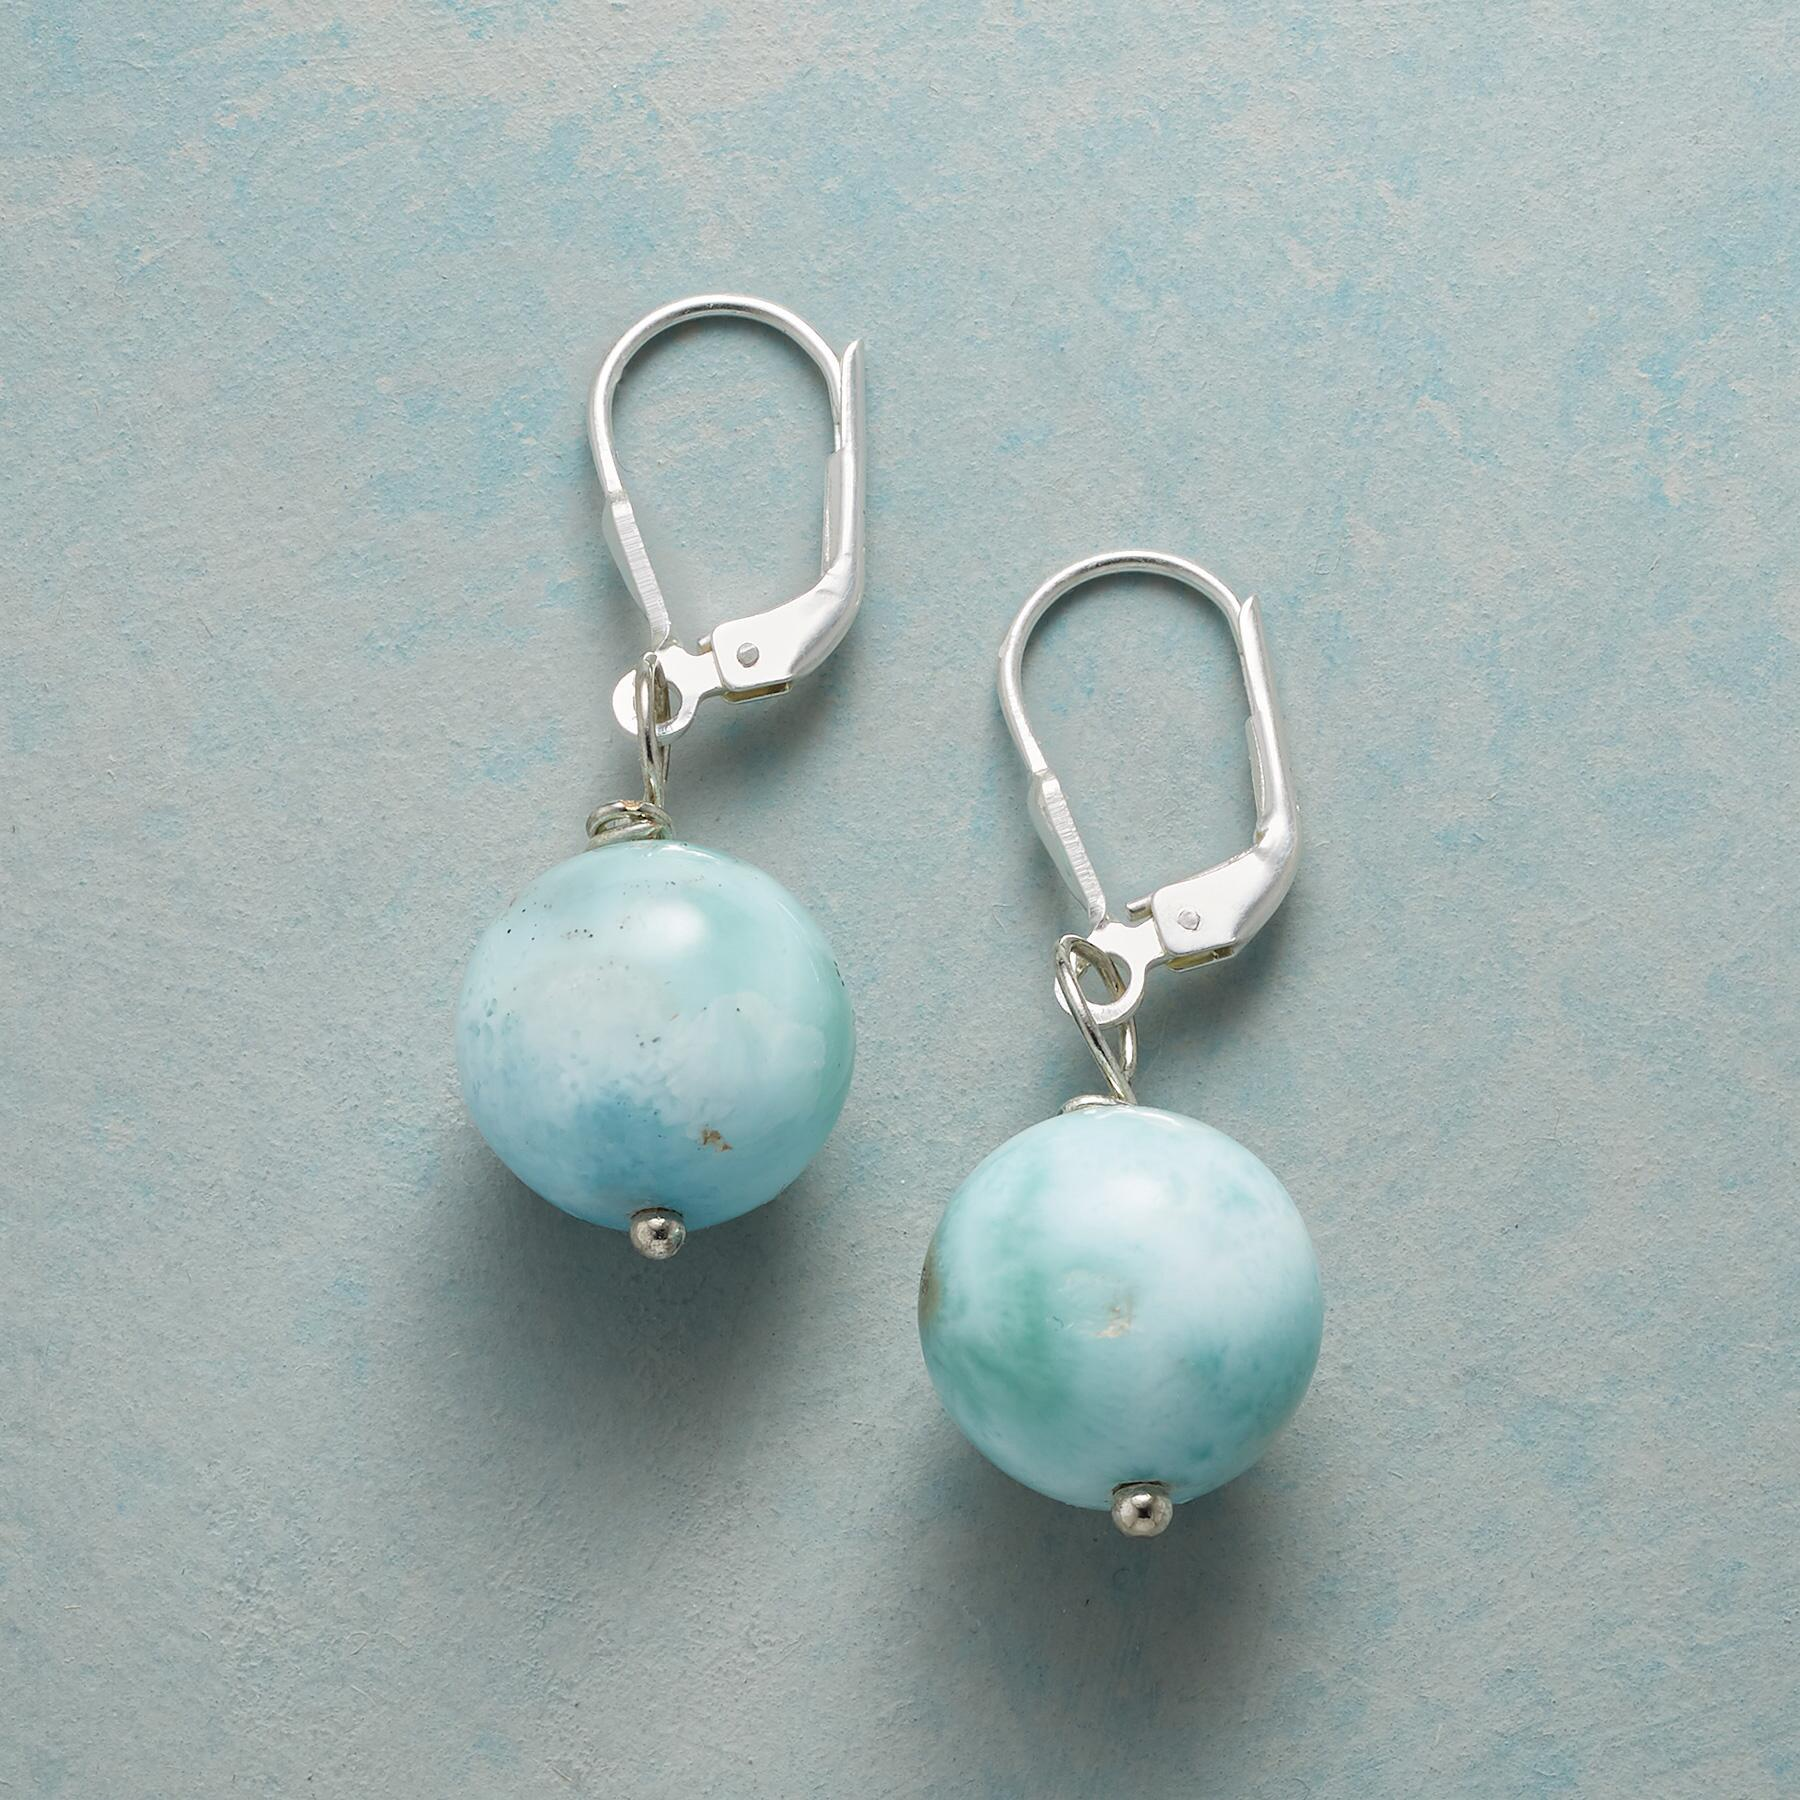 SMALL WORLD EARRINGS: View 1